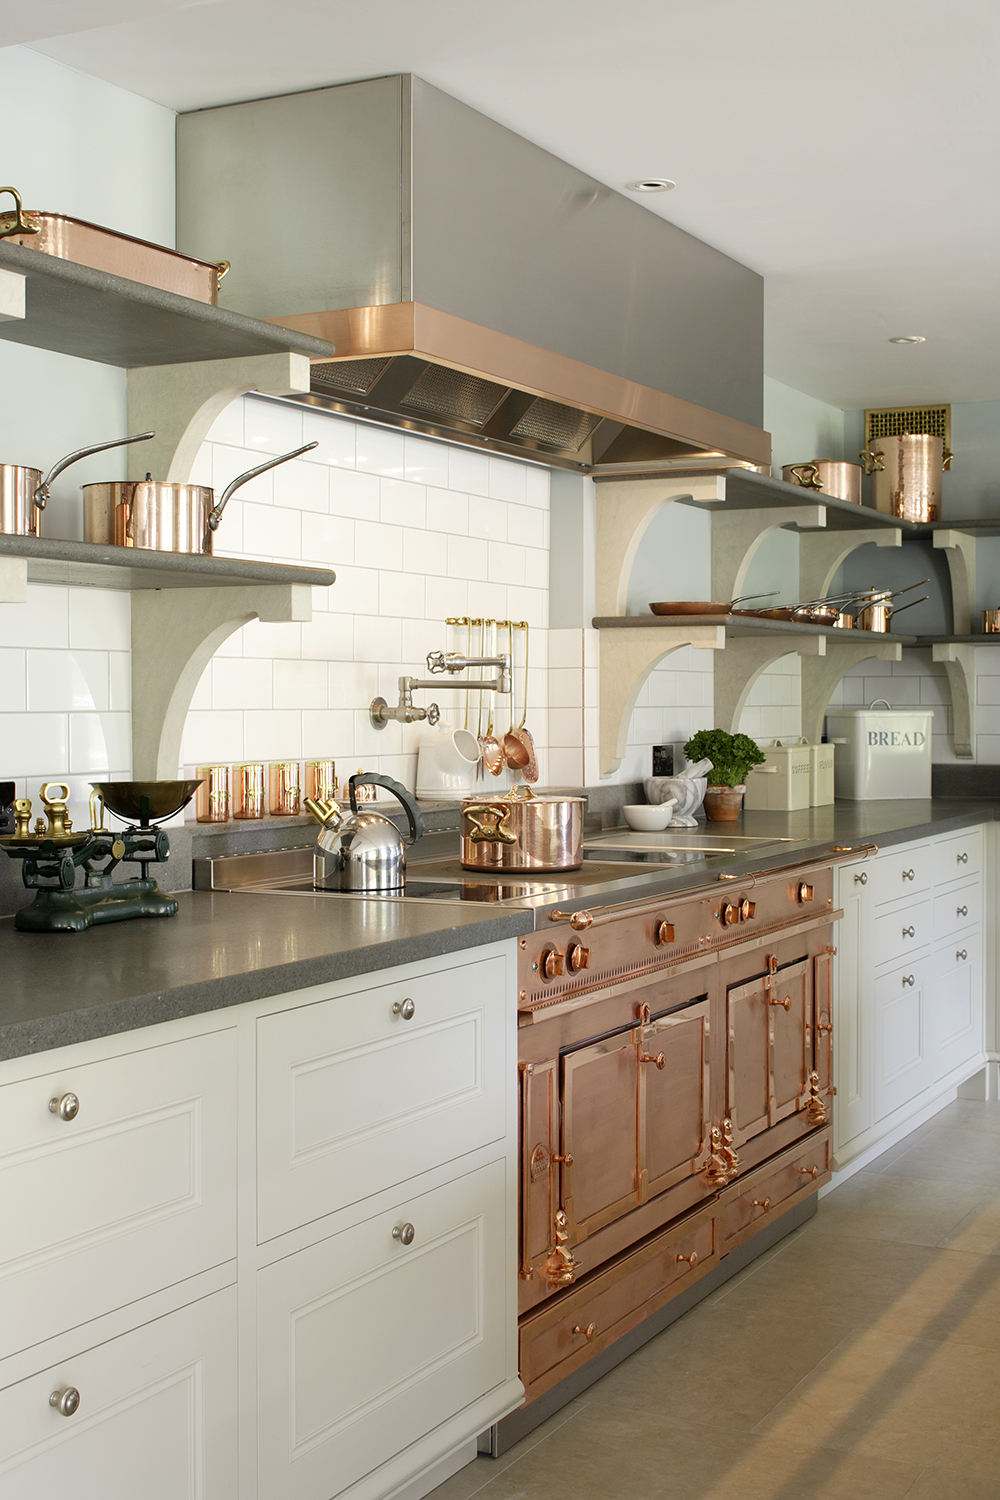 46 best white kitchen cabinet ideas and designs decor10 blog - White cabinet kitchen design ...